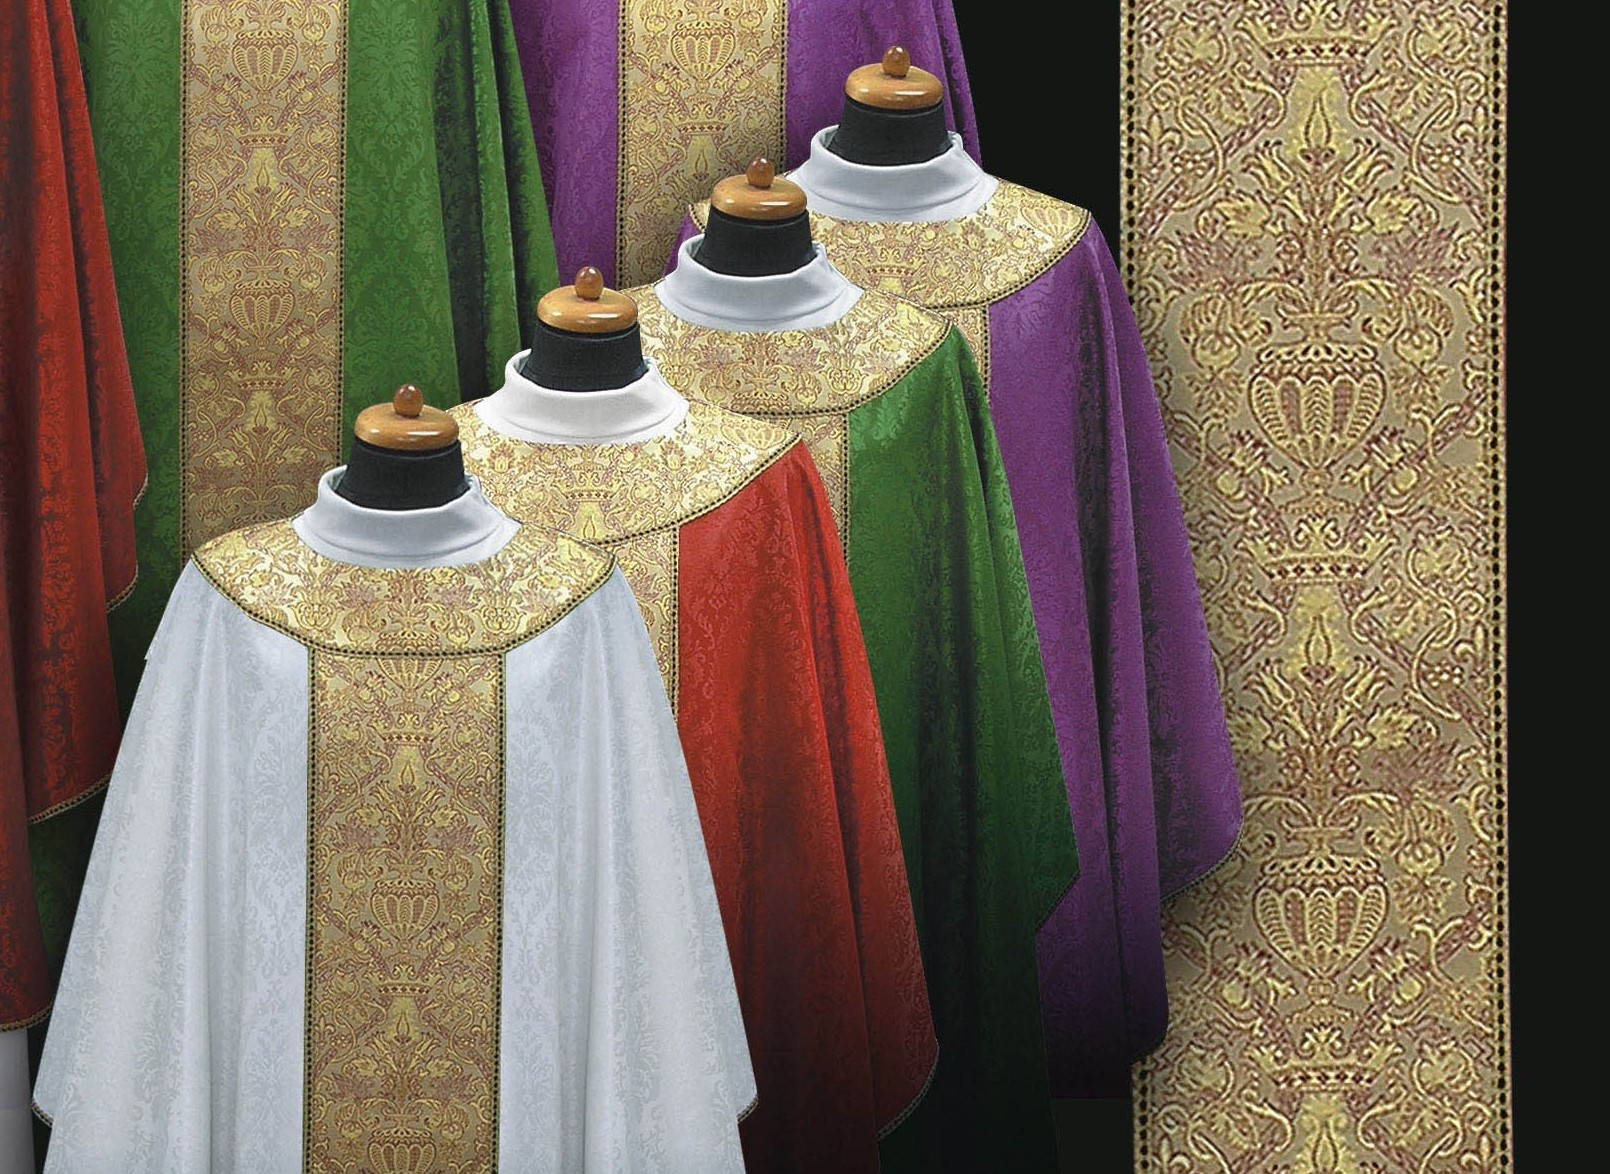 Church Amp Clerical Vestments Chasuble Dalmatic